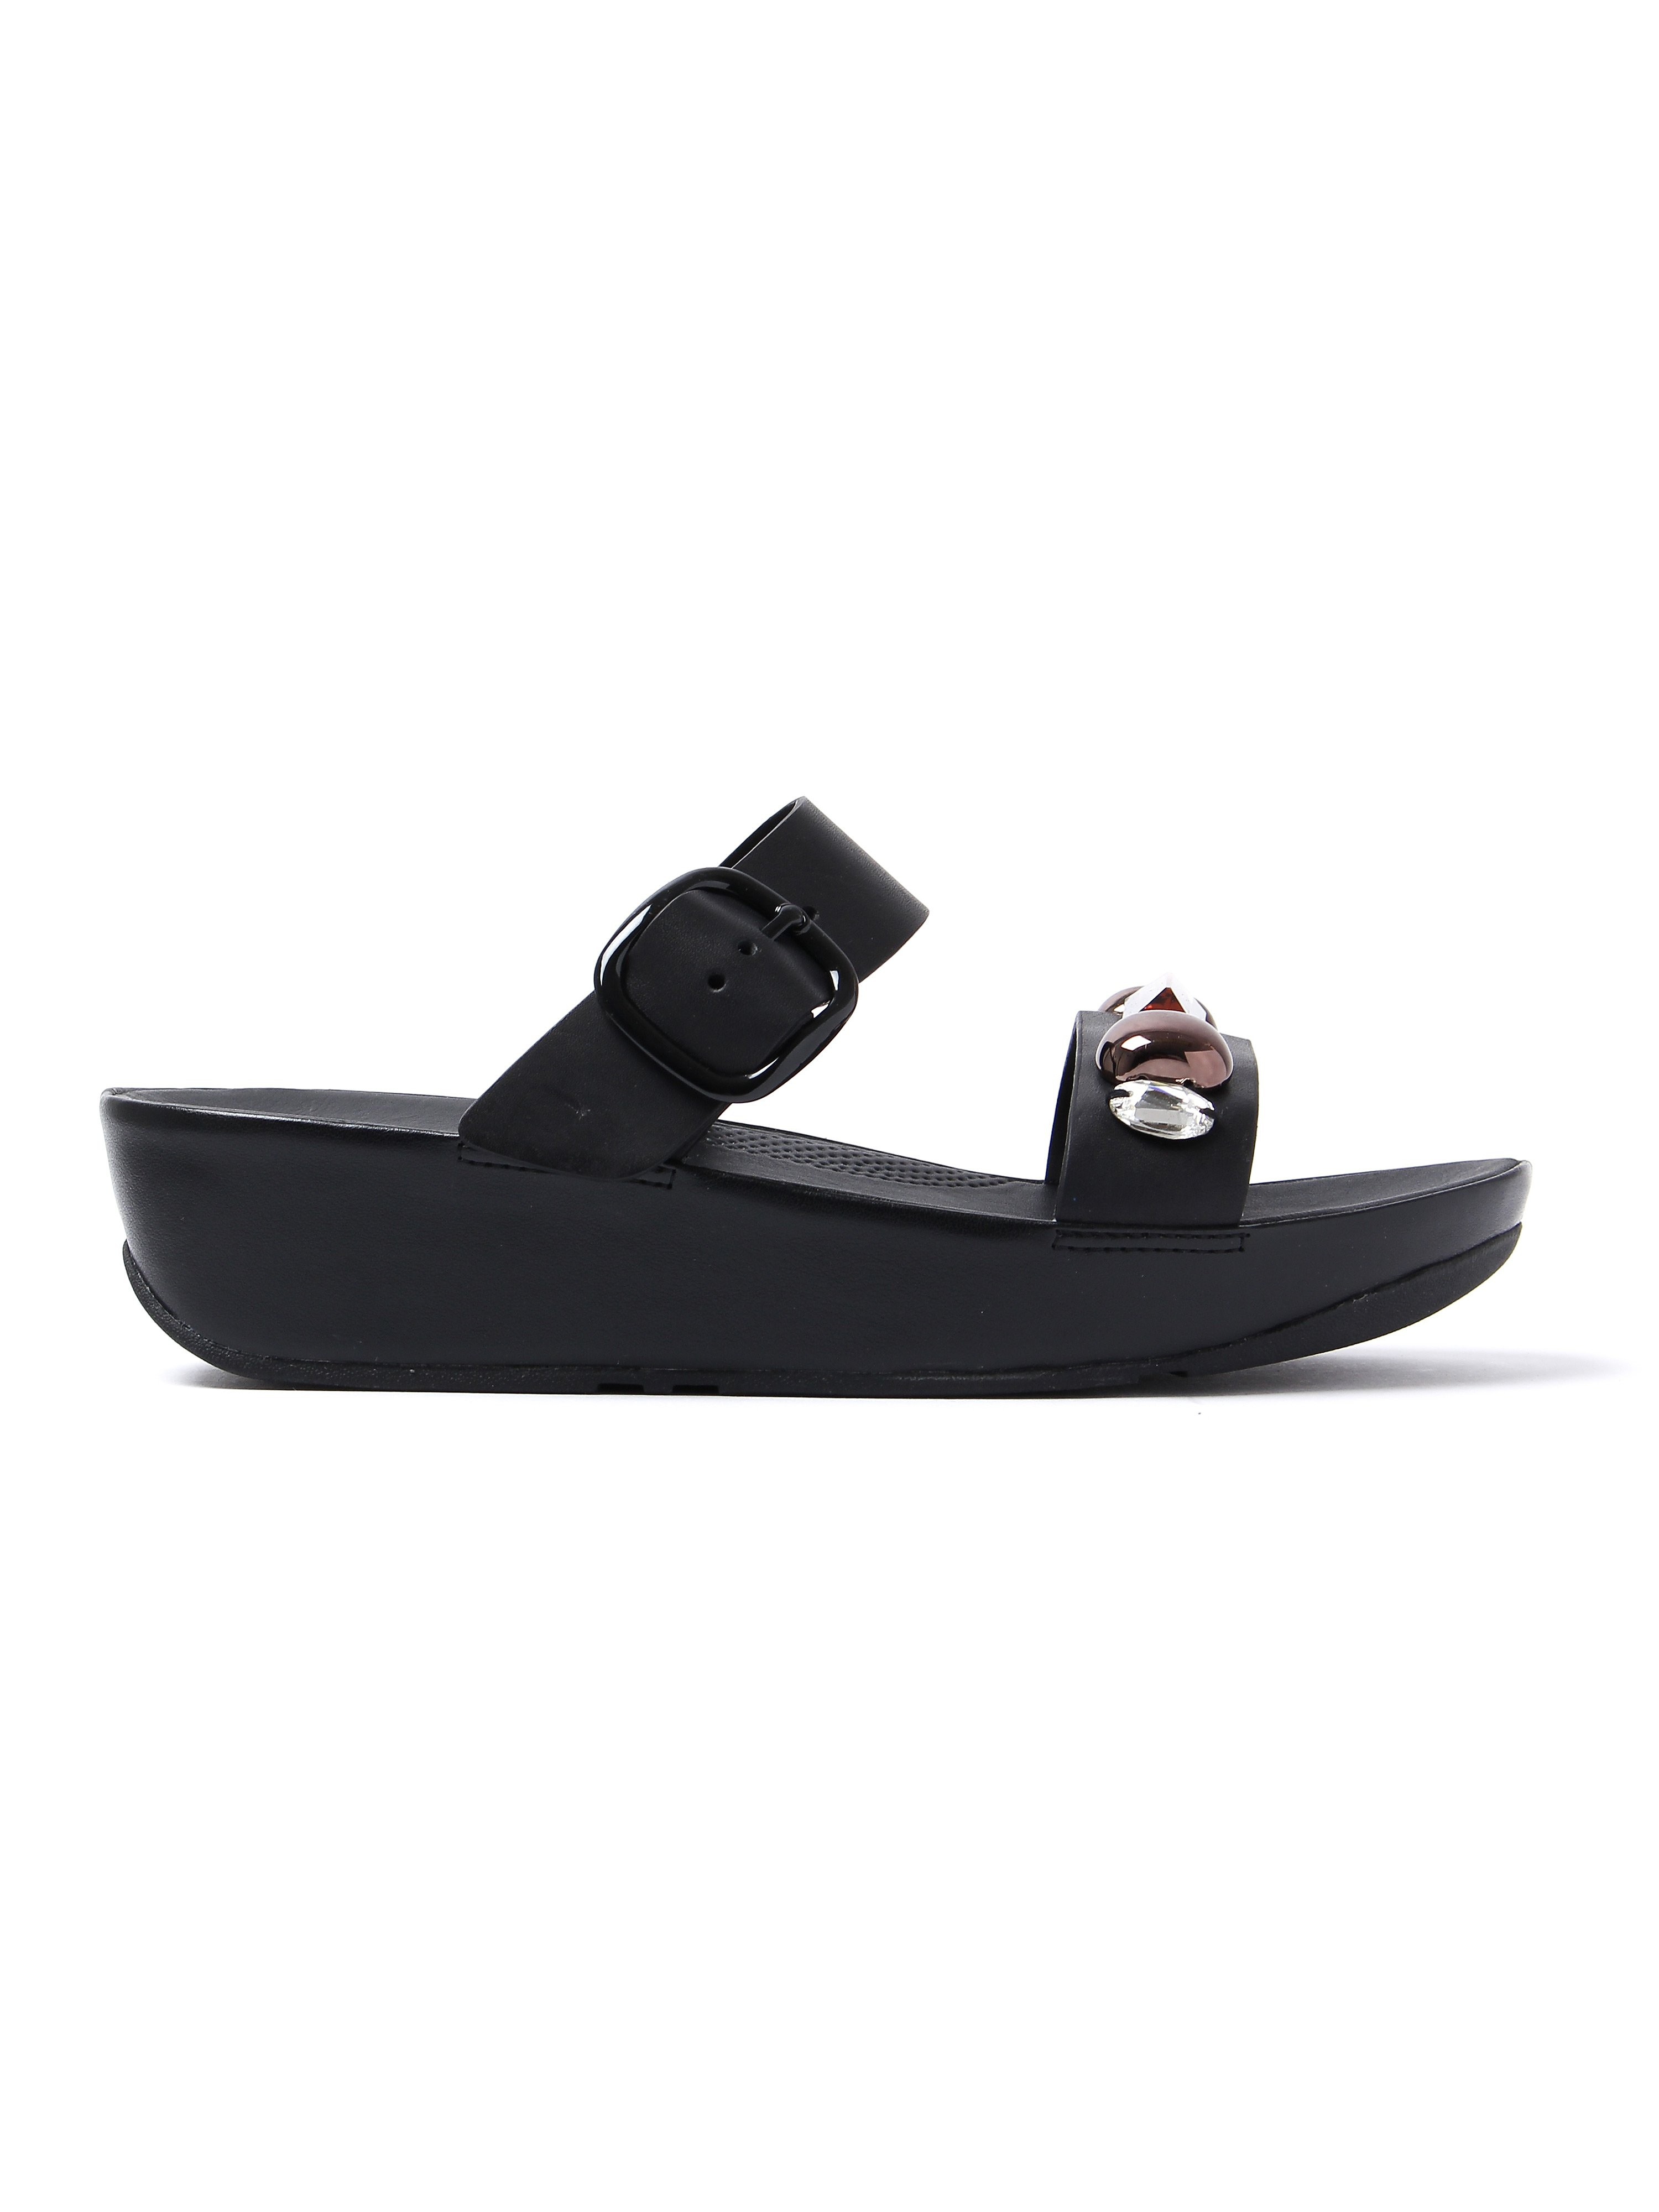 FitFlop Women's Jeweley Slide Sandals - Black